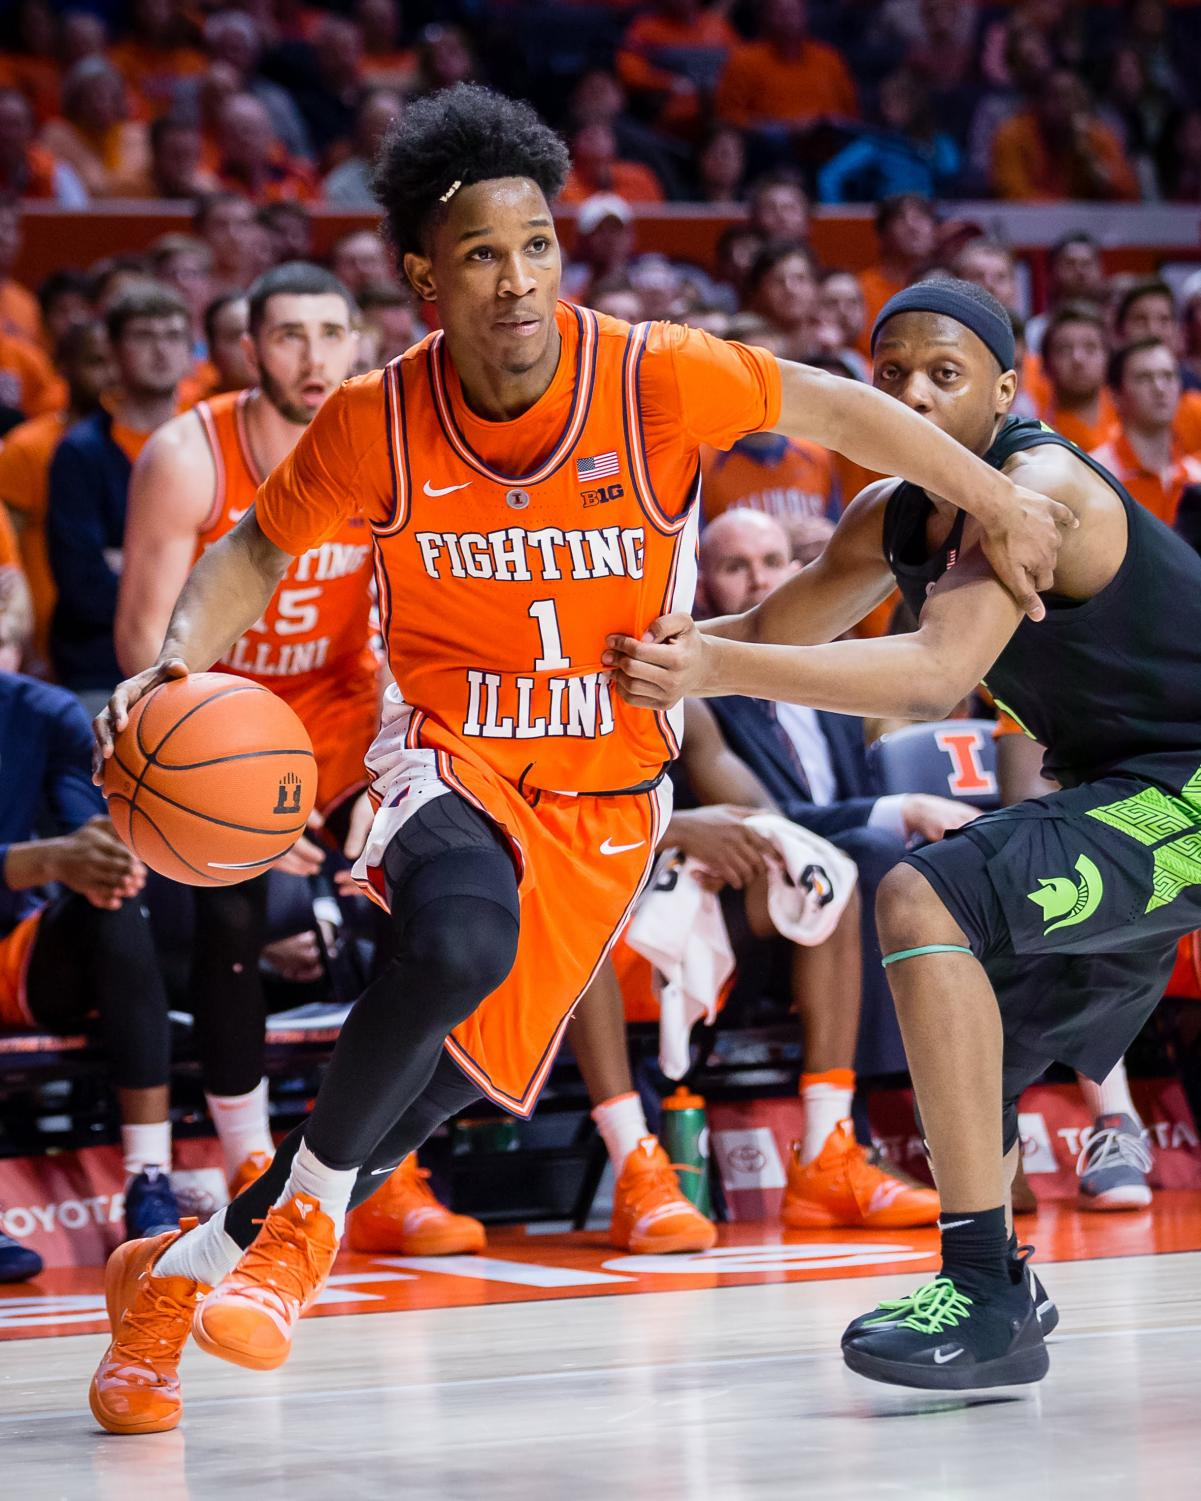 Illinois guard Trent Frazier drives to the basket during the game against Michigan State at the State Farm Center on Feb. 5. The Illini won 79-74.